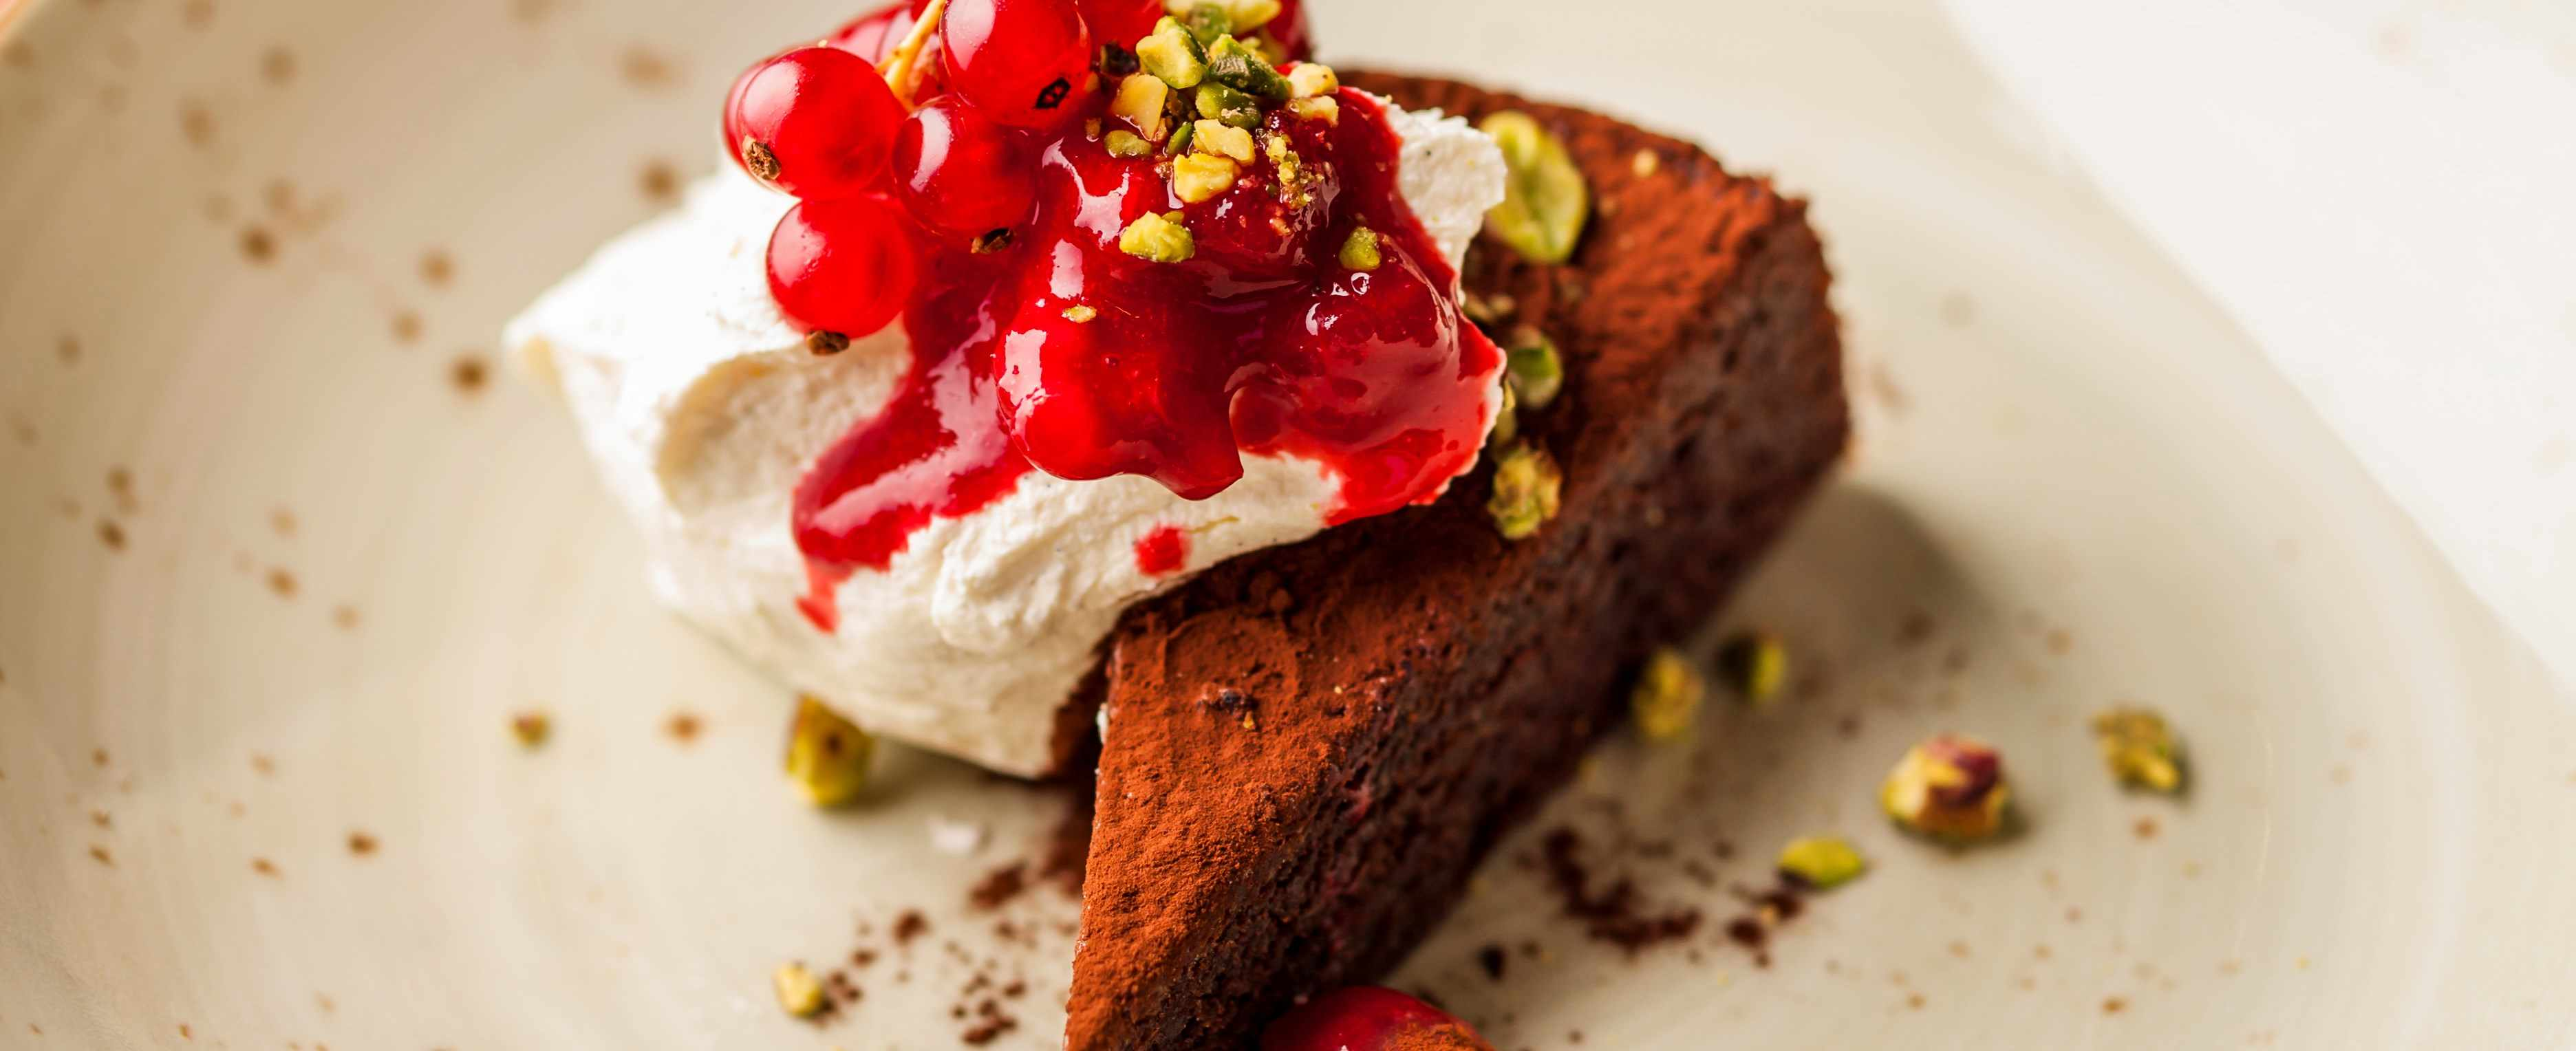 Best ever chocolate pudding recipes - Flourless chocolate cake (caprese)